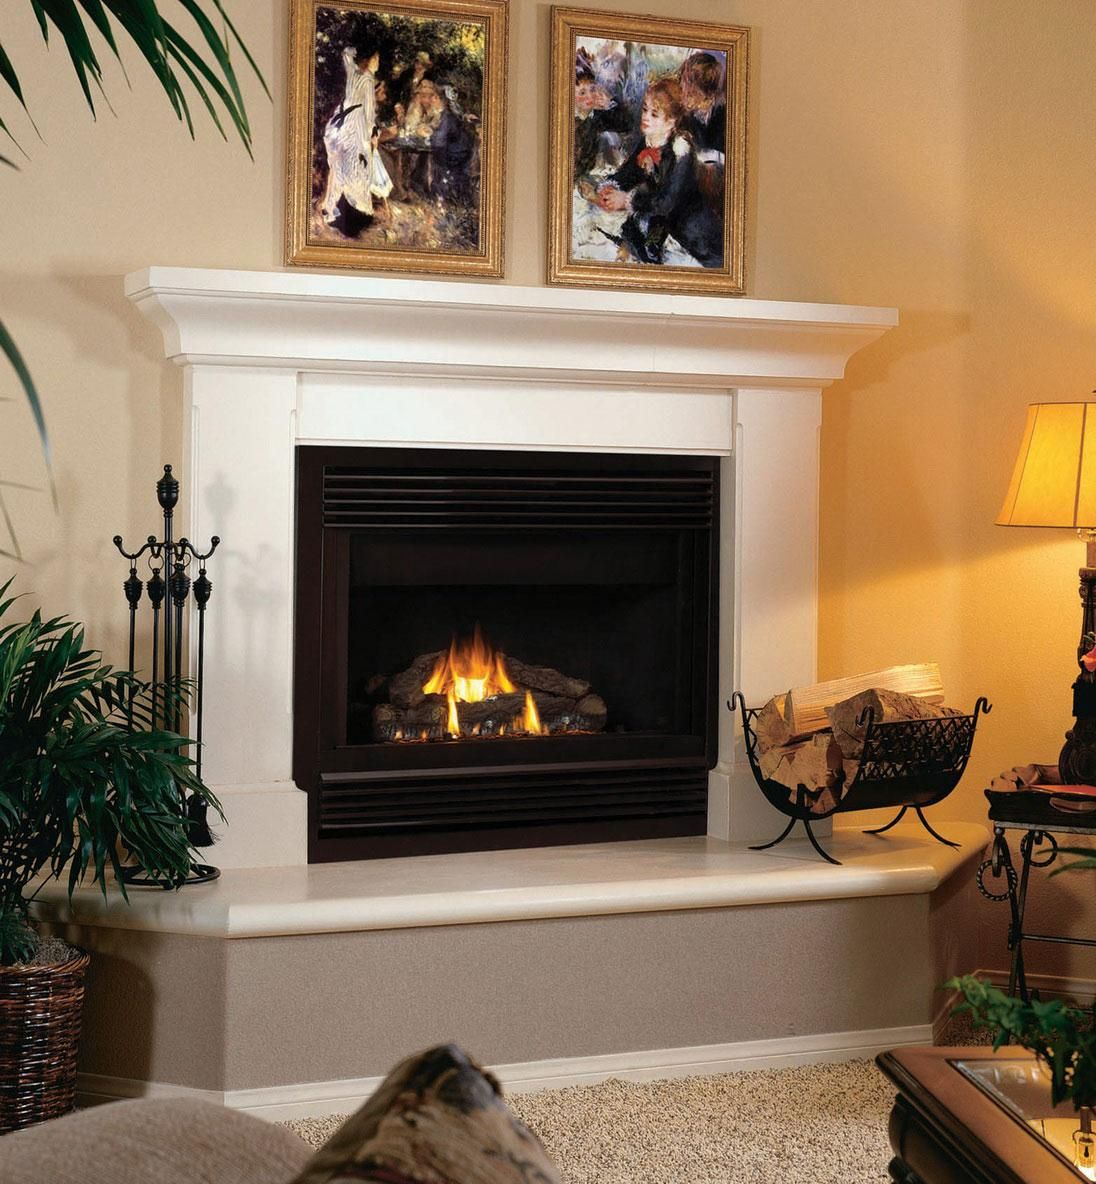 Tile Fireplaces Design Ideas image of contemporary fireplace tile surround ideas Mantel Decorations Ideas Inspirations Amazing Elegant White Fireplace Mantel Design Ideas Painted Fireplace